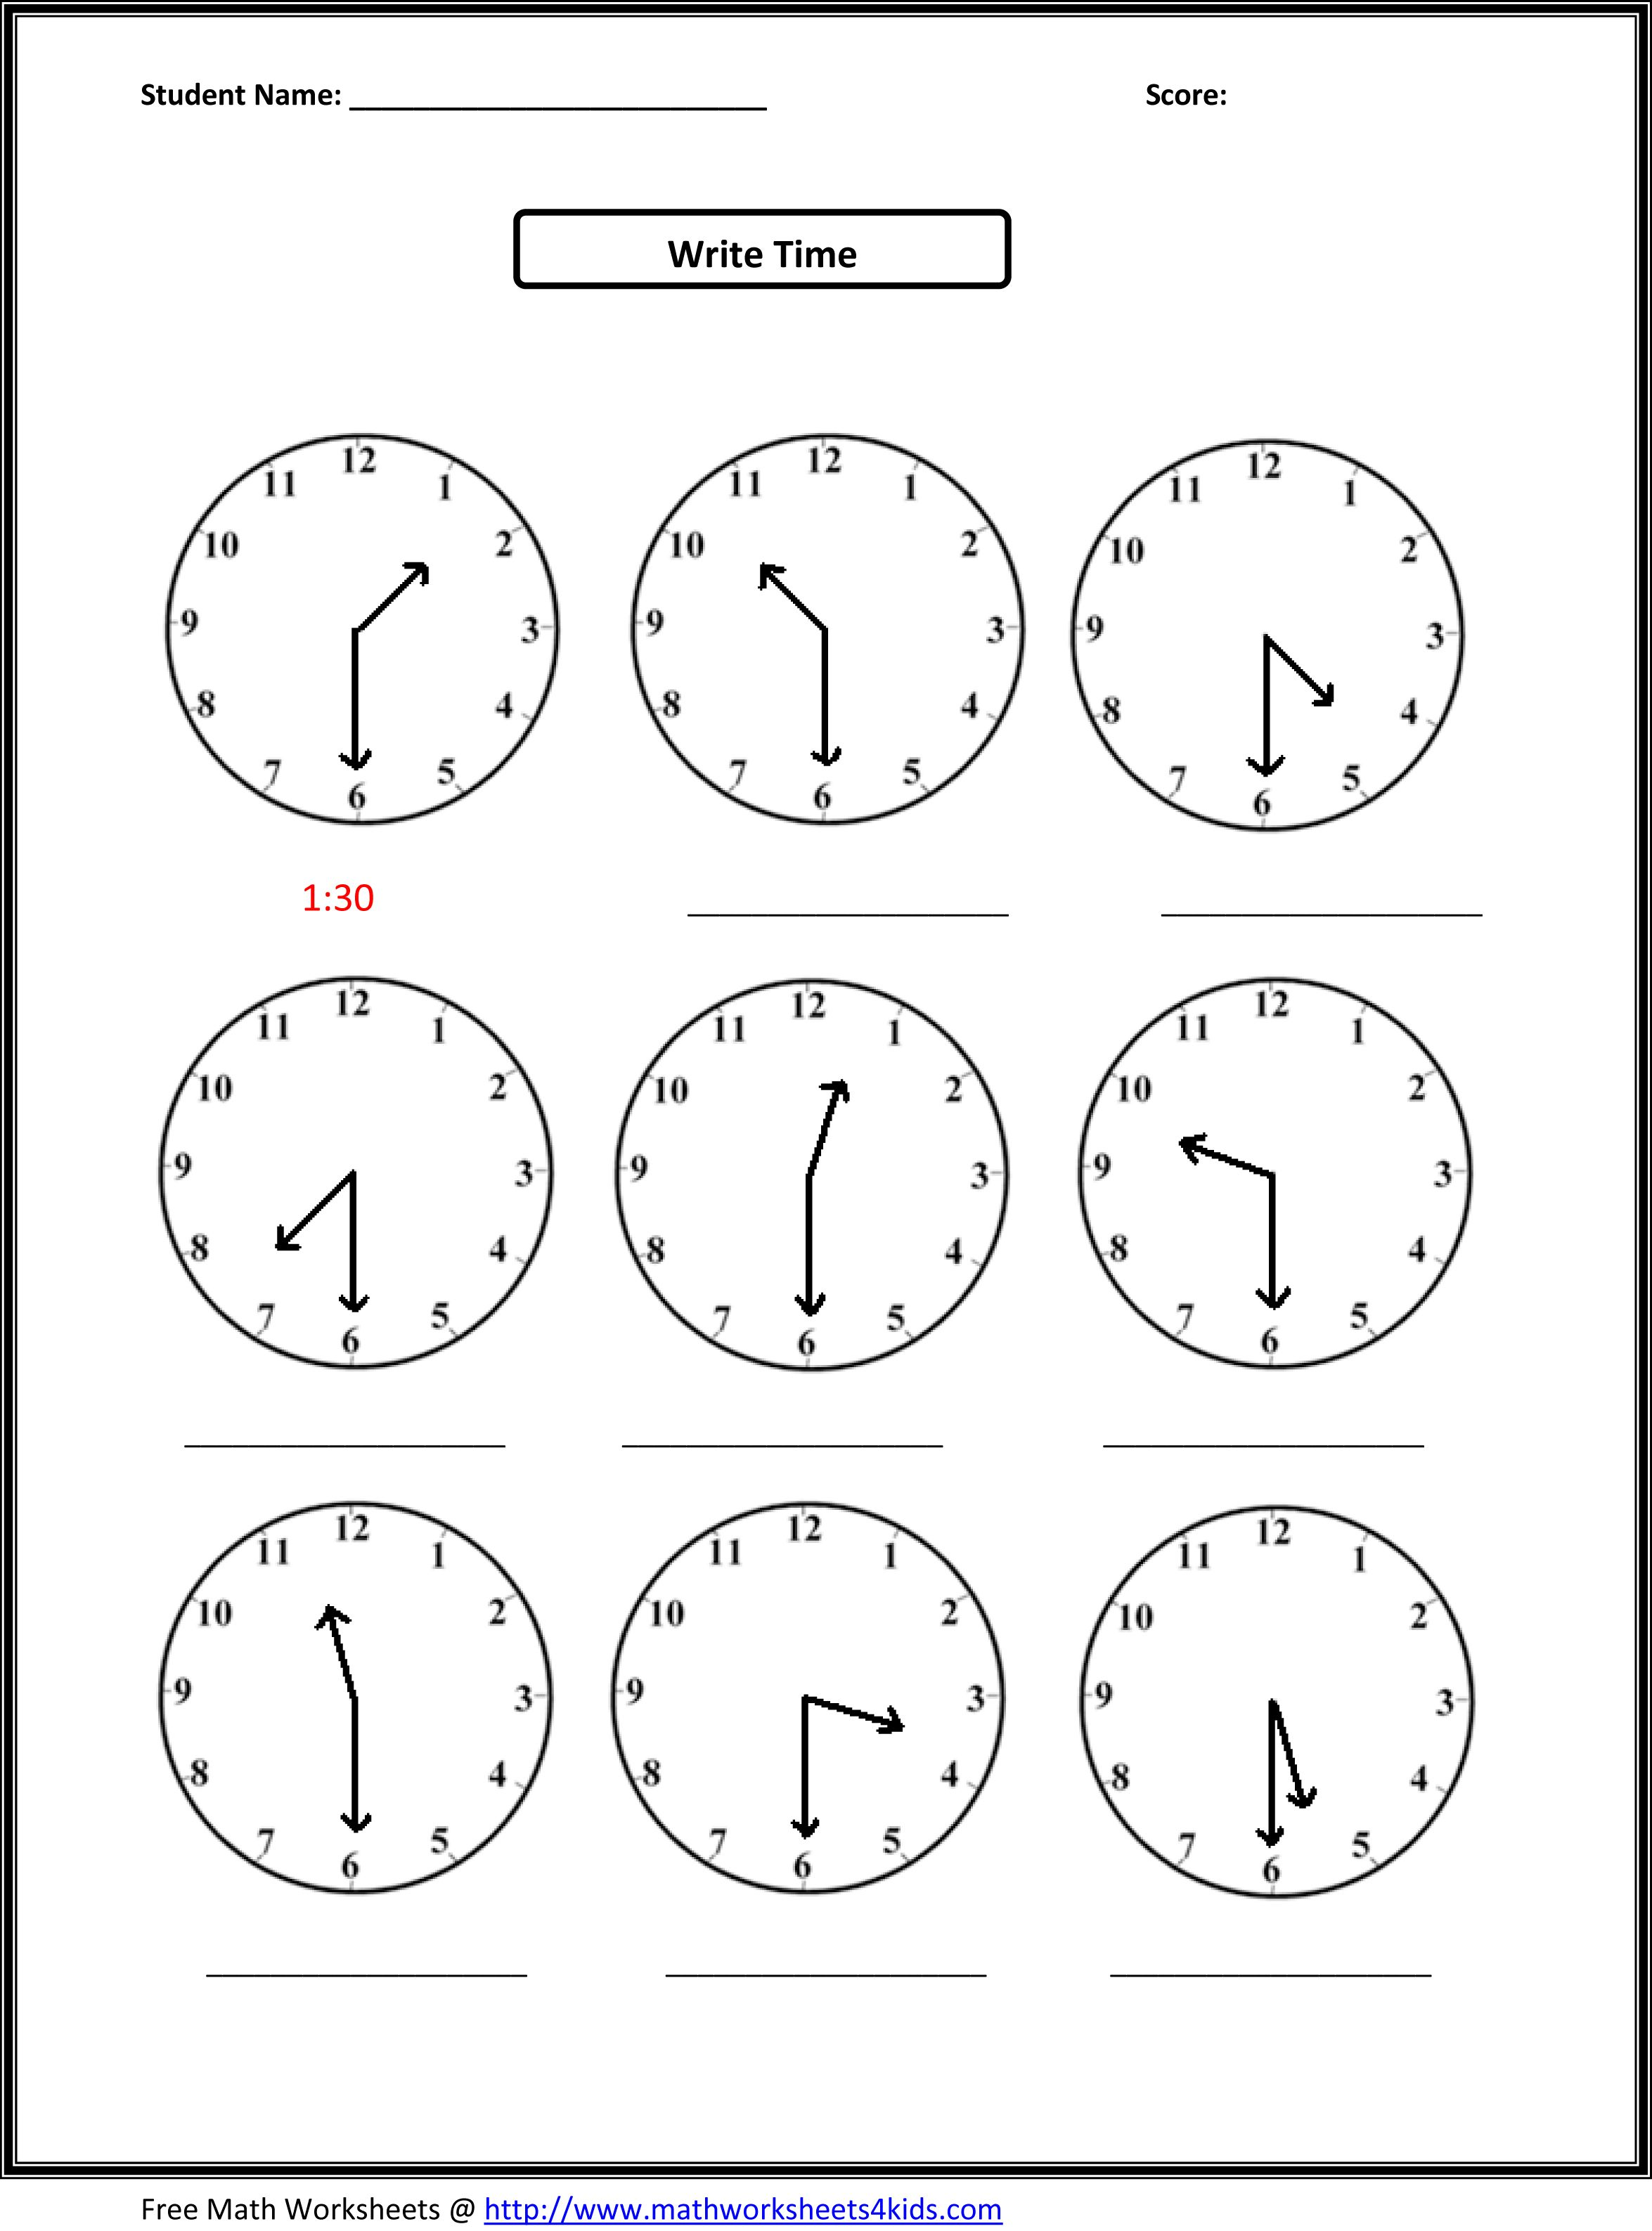 Weirdmailus  Unusual Worksheet On Time For Grade   Reocurent With Interesting Free Printable Telling Time Worksheets Nd Grade  Reocurent With Lovely Frank Schaffer Publications Worksheets Also First Grade Worksheets Free Printable In Addition Mitosis And The Cell Cycle Worksheet And Kingdoms Of Life Worksheet As Well As Lowercase A Worksheet Additionally Ionic Compound Worksheet  From Reocurentcom With Weirdmailus  Interesting Worksheet On Time For Grade   Reocurent With Lovely Free Printable Telling Time Worksheets Nd Grade  Reocurent And Unusual Frank Schaffer Publications Worksheets Also First Grade Worksheets Free Printable In Addition Mitosis And The Cell Cycle Worksheet From Reocurentcom